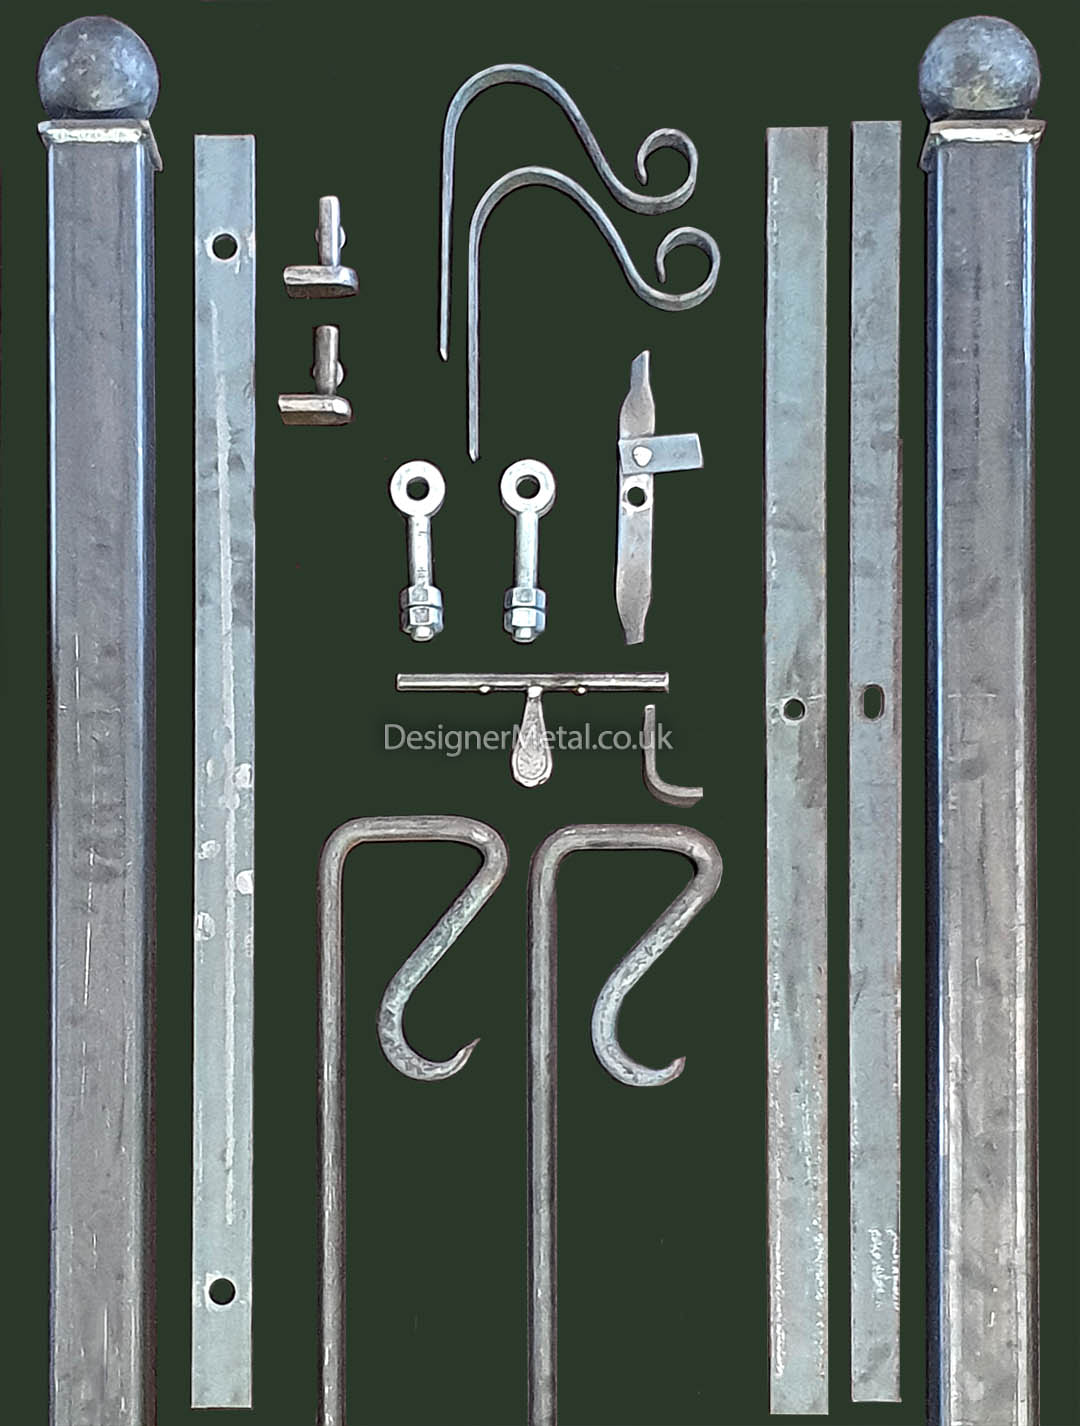 Gate kit components